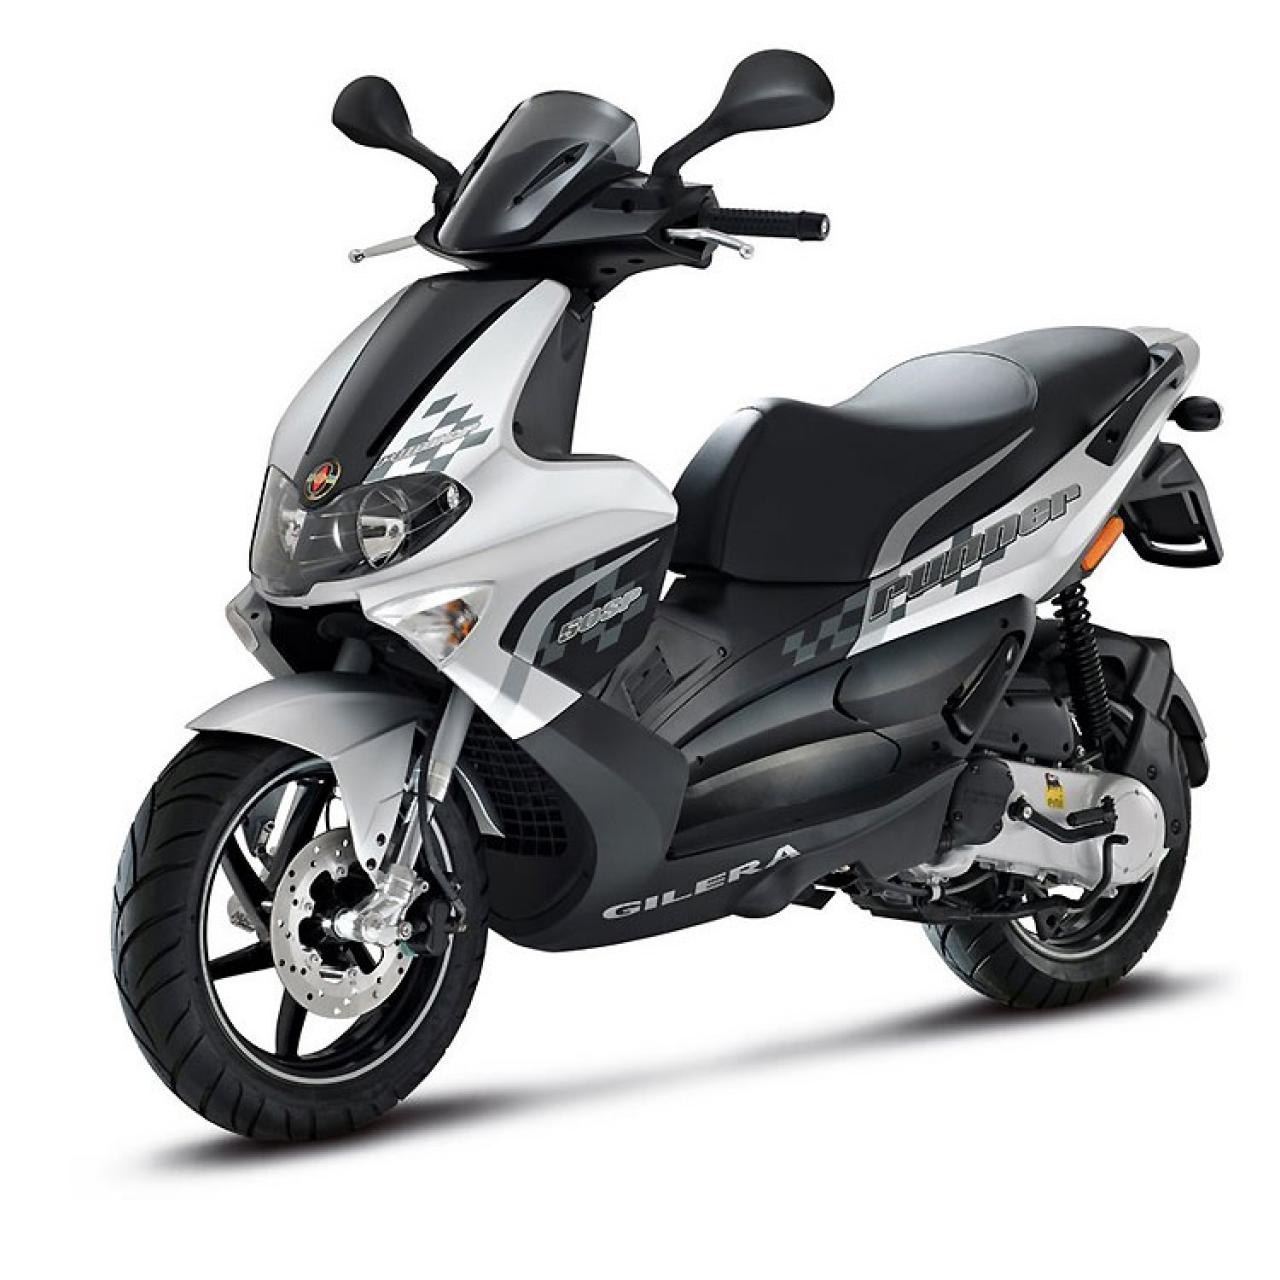 Gilera Runner 50 Black Soul 2015 images #76491